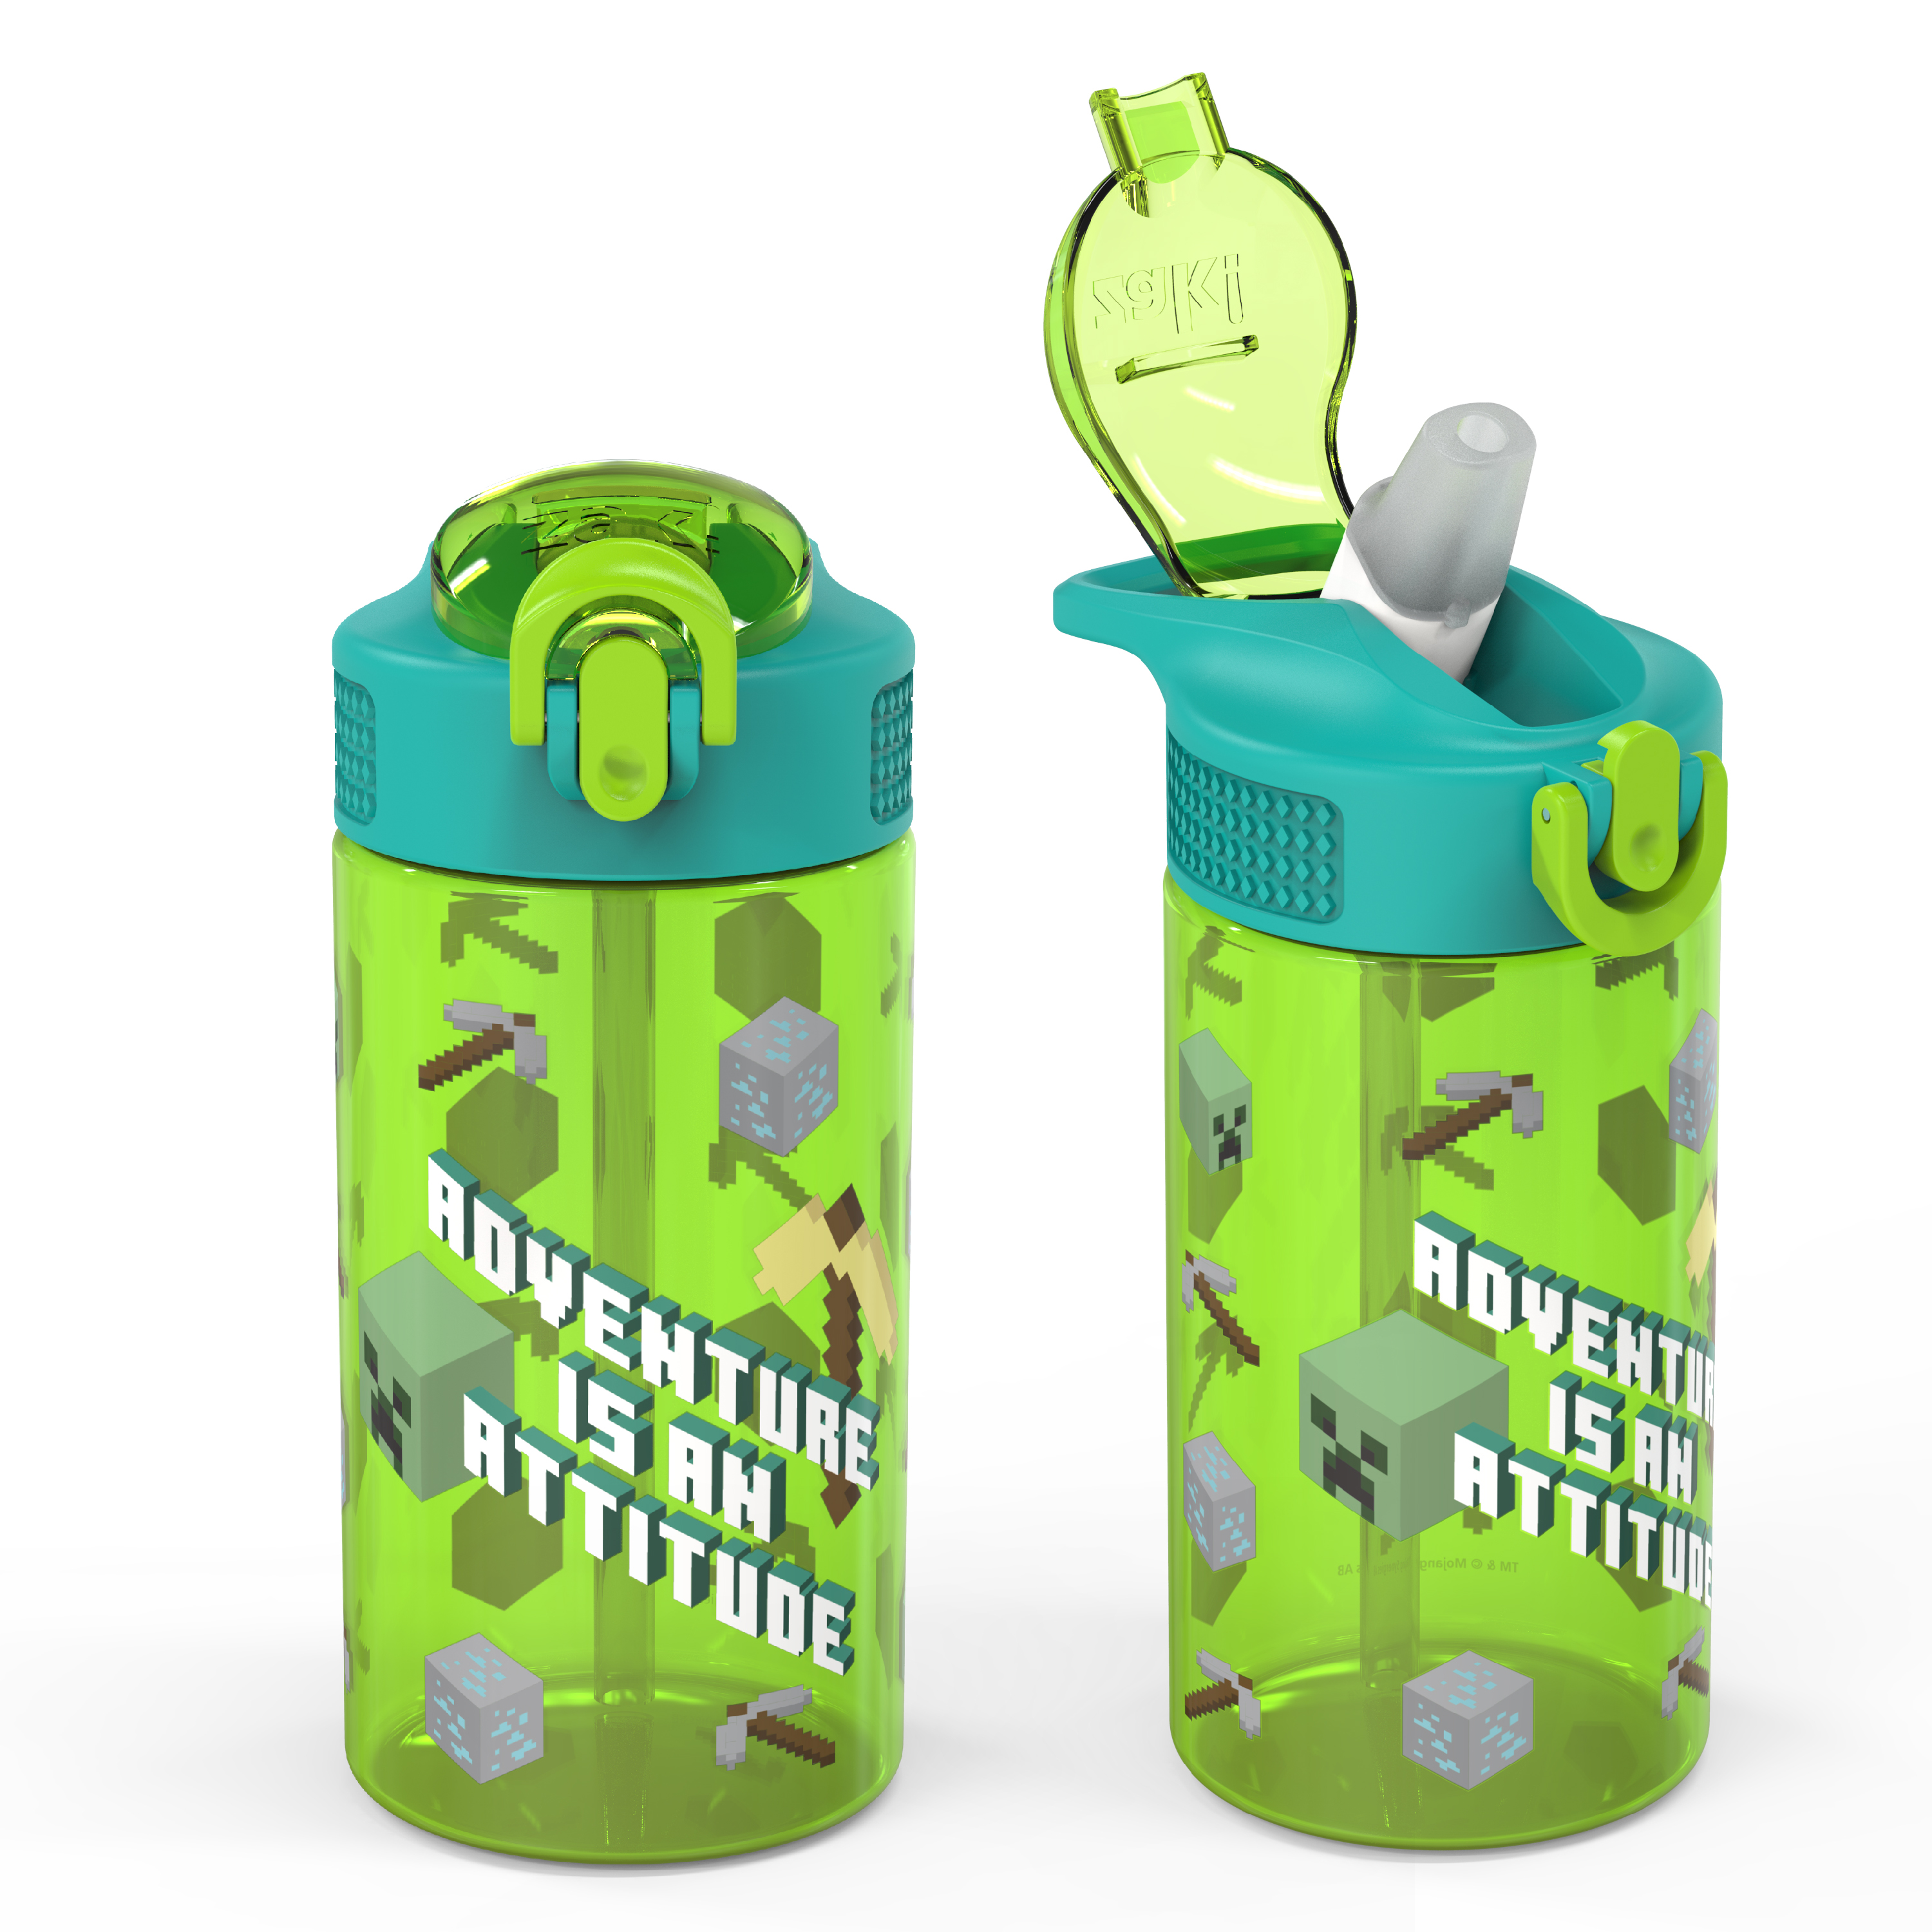 Minecraft 16 ounce Reusable Plastic Water Bottle with Straw, Creeper, 2-piece set slideshow image 1